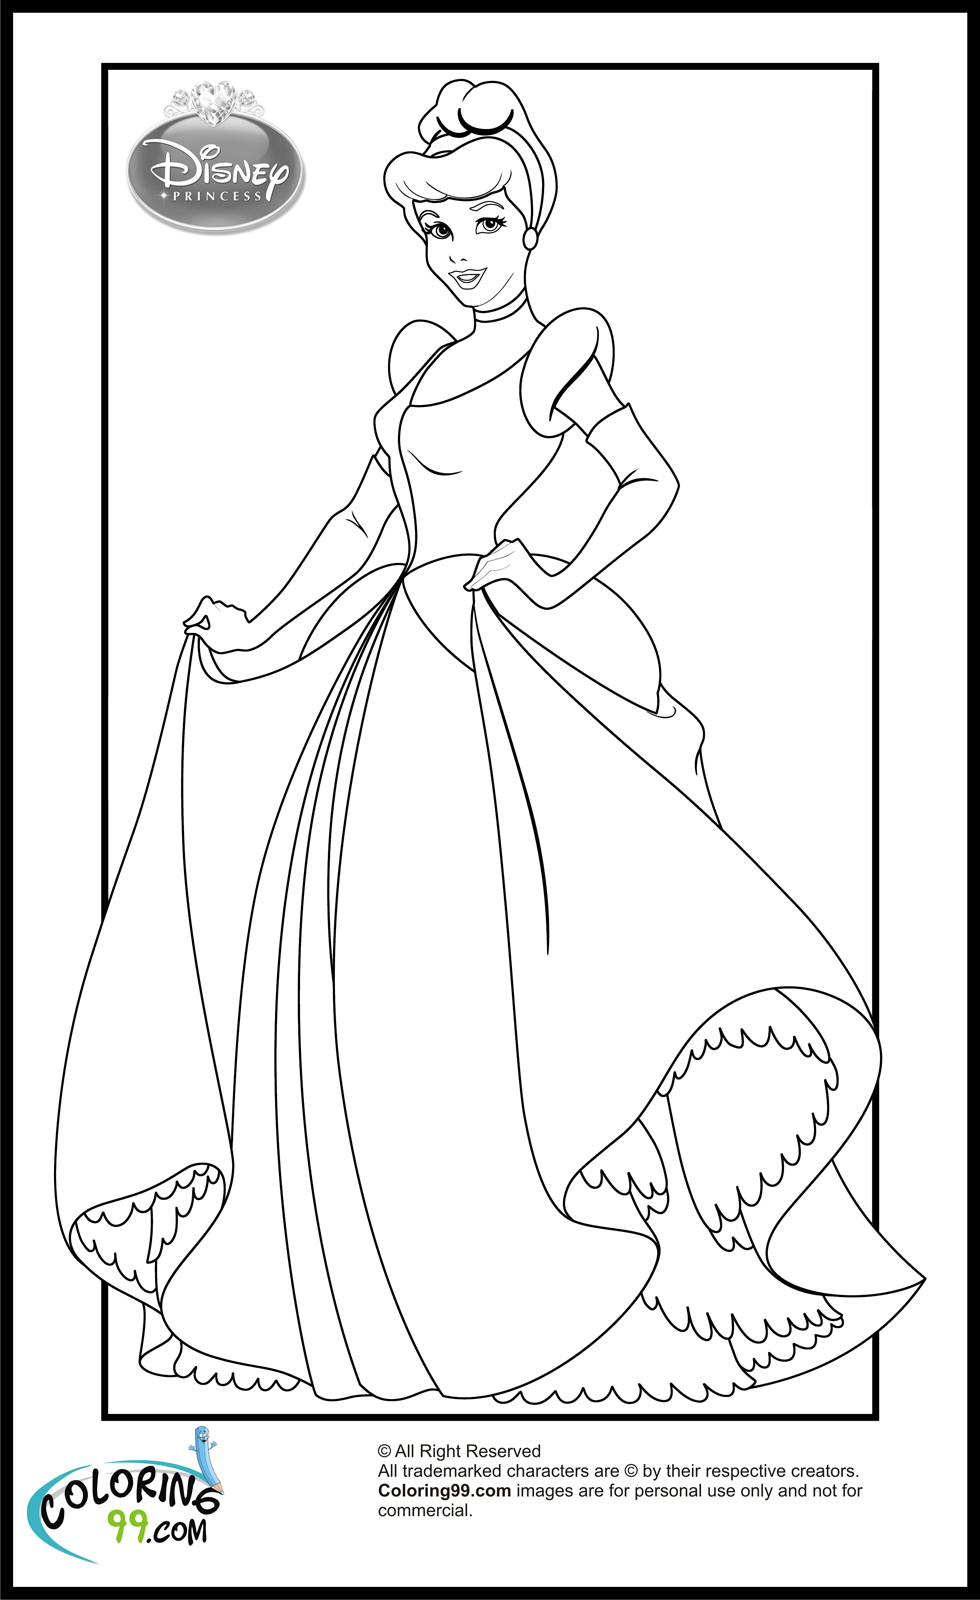 coloring pages of cinderella cinderella coloring pages to download and print for free cinderella coloring pages of